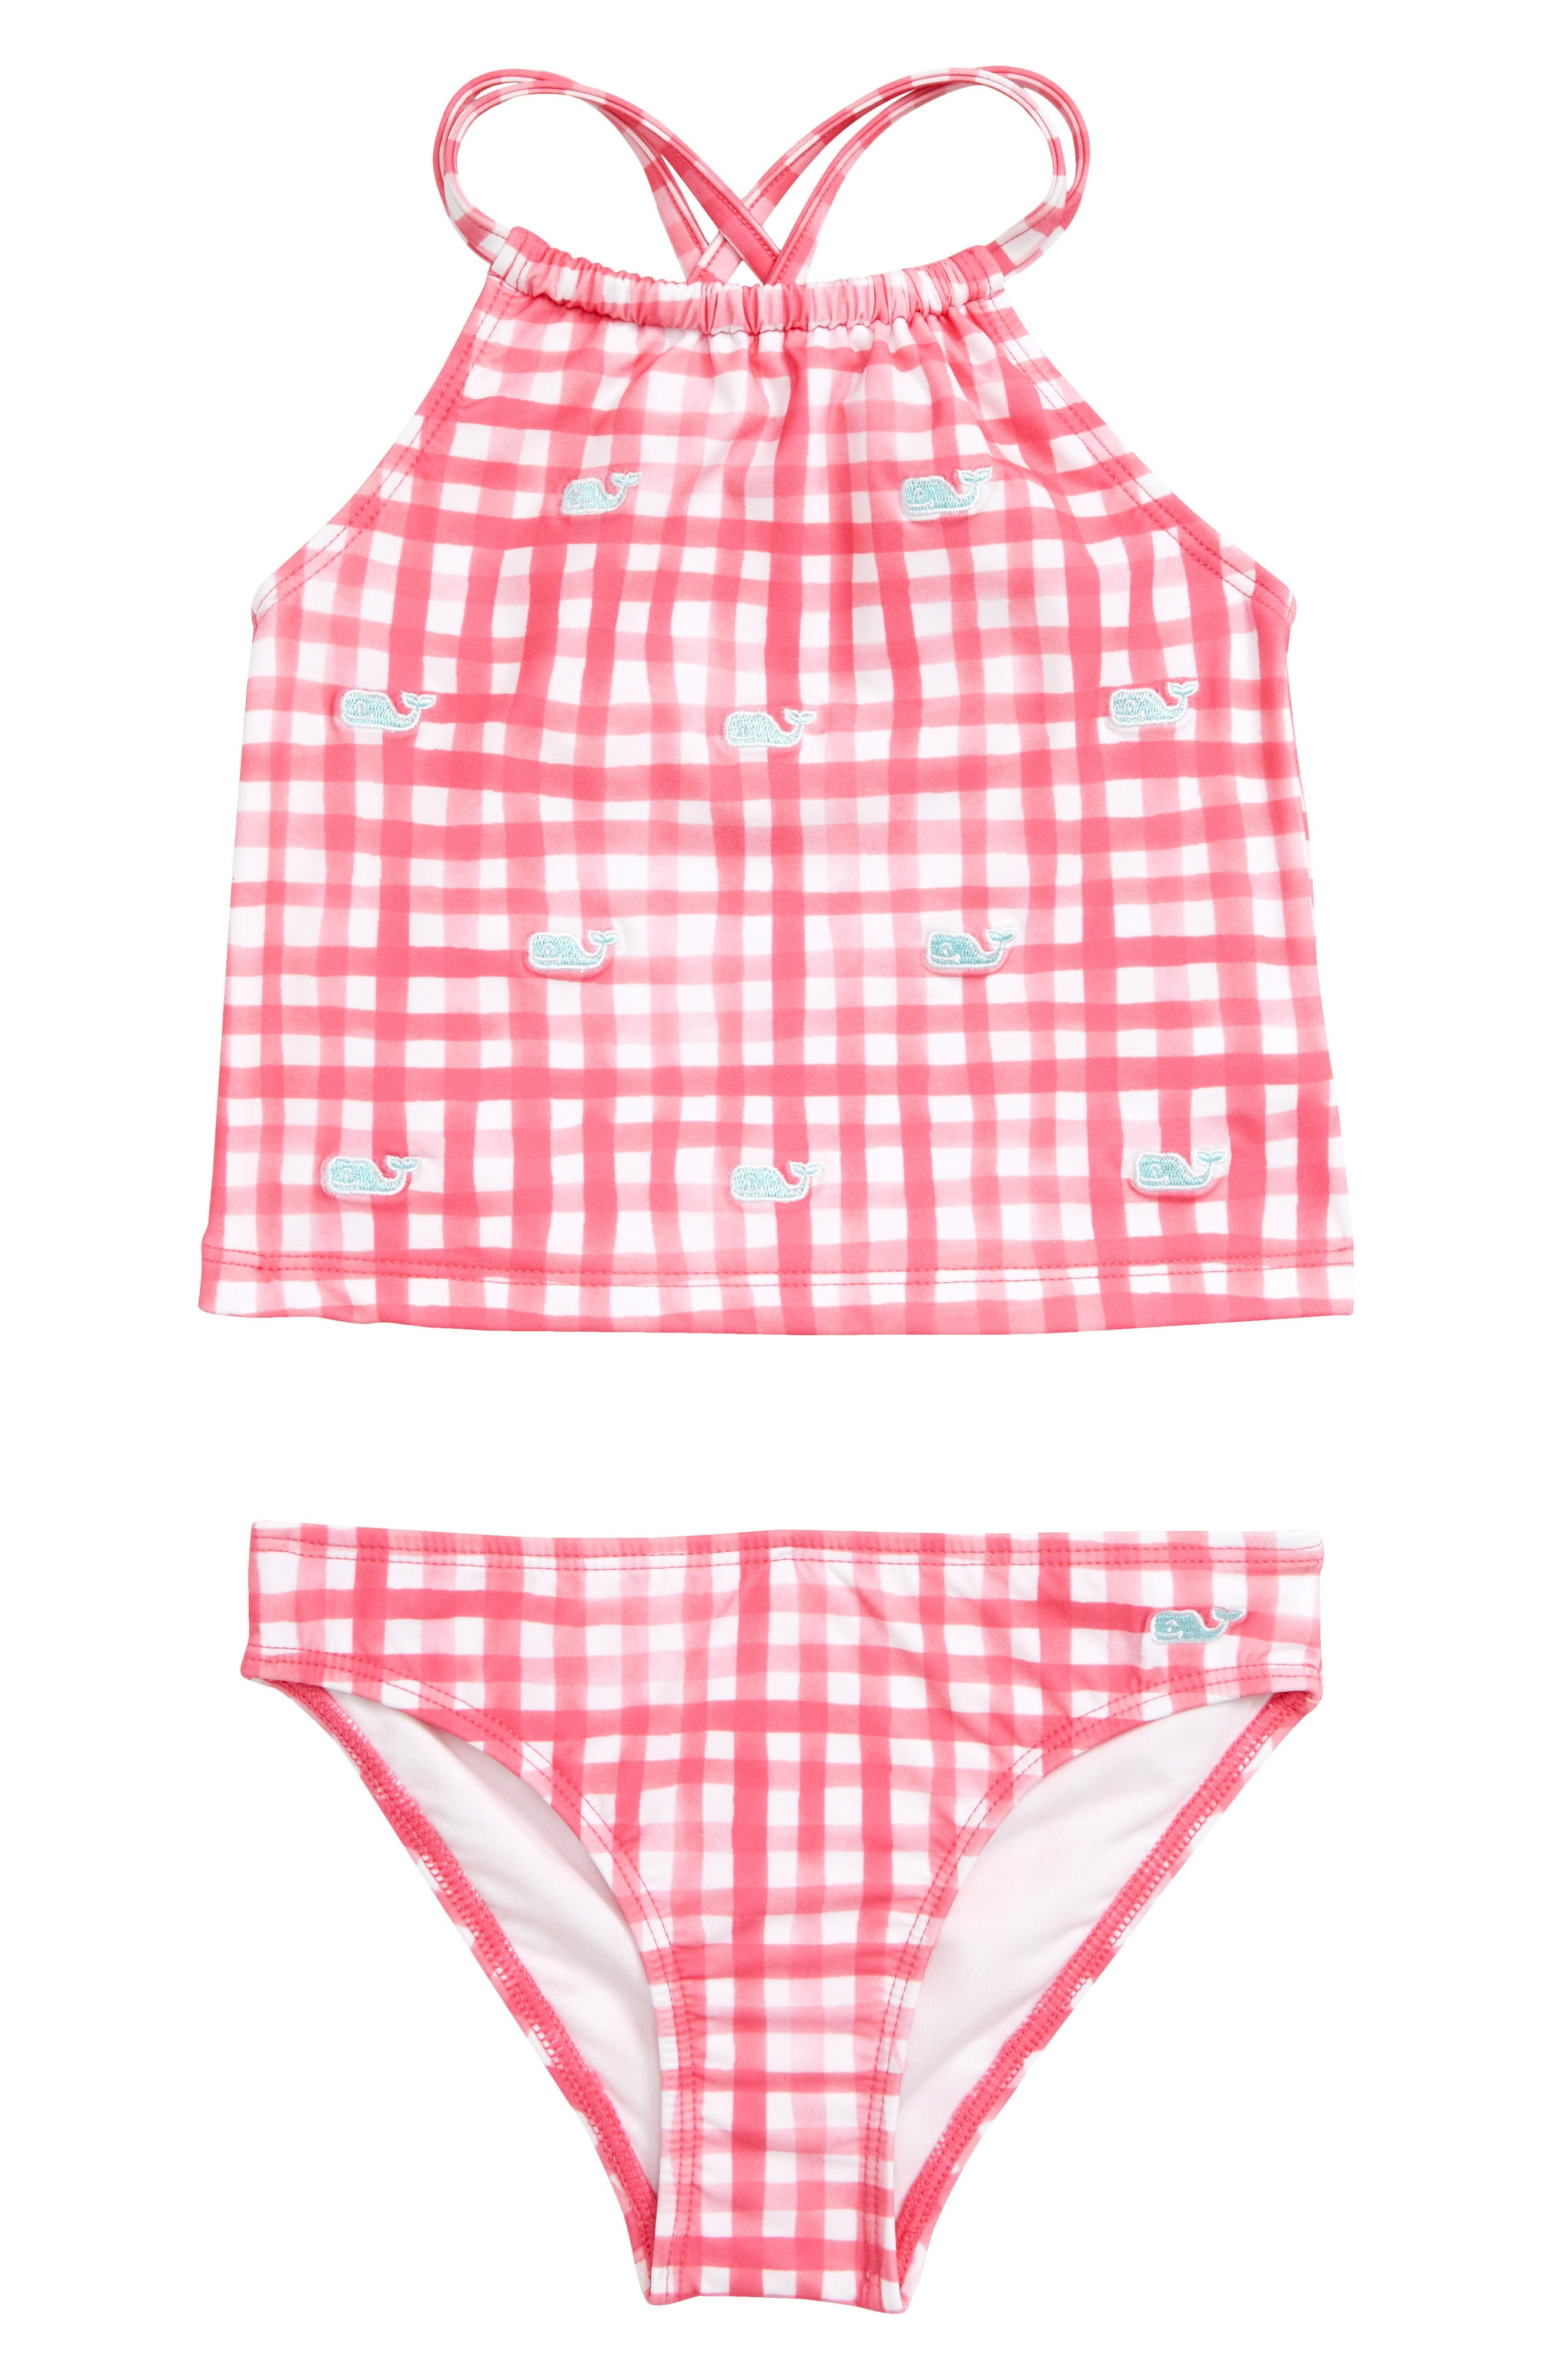 VINEYARD VINES, Painted Gingham Two-Piece Tankini Swimsuit, Main thumbnail 1, color, SWEET TAFFY